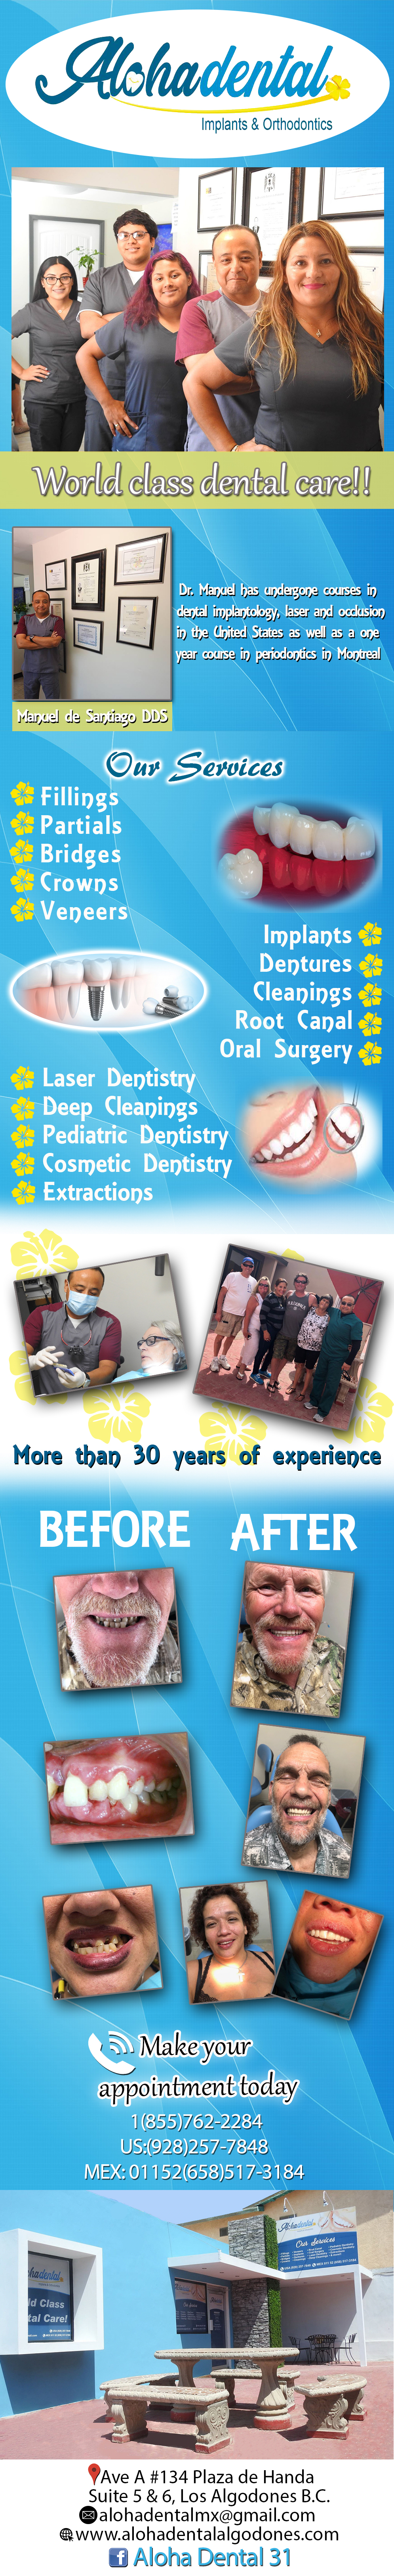 Aloha Dental Implants & Orthodontics  Dr. Manuel de Santiago DDS in Algodones  in Algodones  Implants & Orthodontics *Fillings *Partials *Bridges *Crowns *Veneers *Implants *Dentures *Cleanings *Root Canal *Oral Surgery *Laser Dentistry *Deep Cleanings *Pediatric Dentistry *Cosmetic Dentistry *Extrations                        dentist dentistry implants orthodontics dental alohadental aloa dental